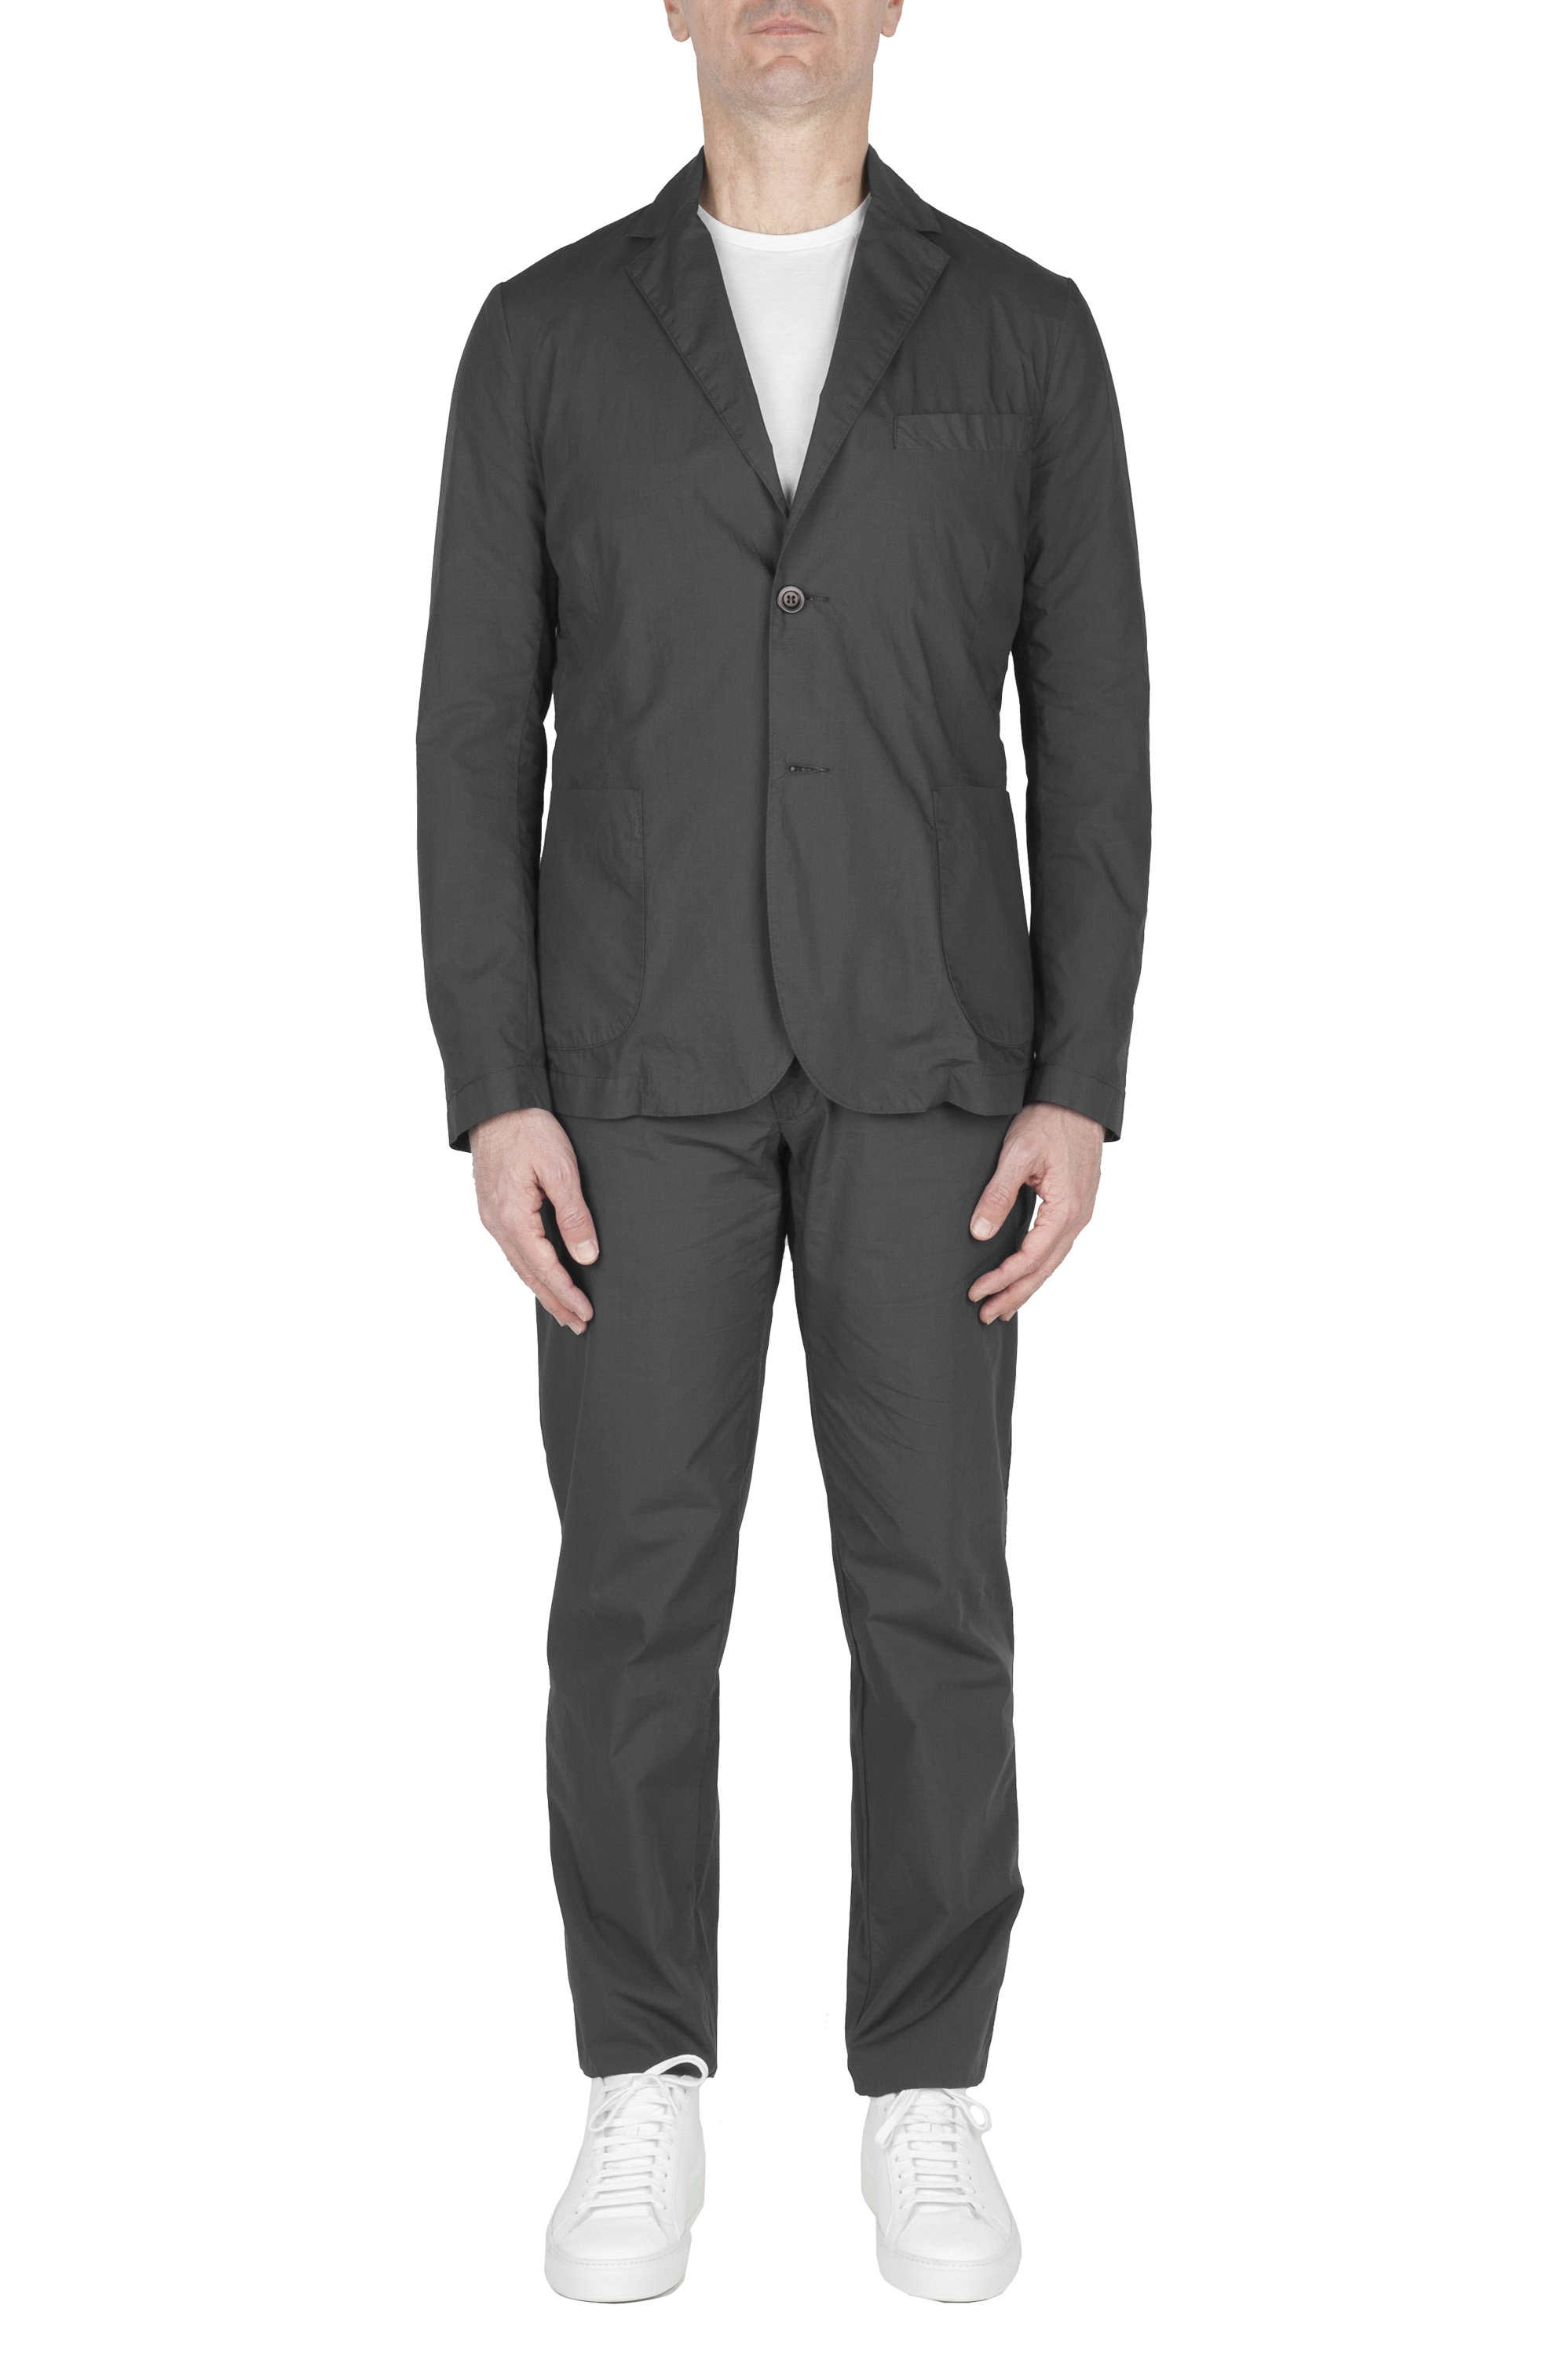 SBU 03058_2020AW Dark grey cotton sport suit blazer and trouser 01